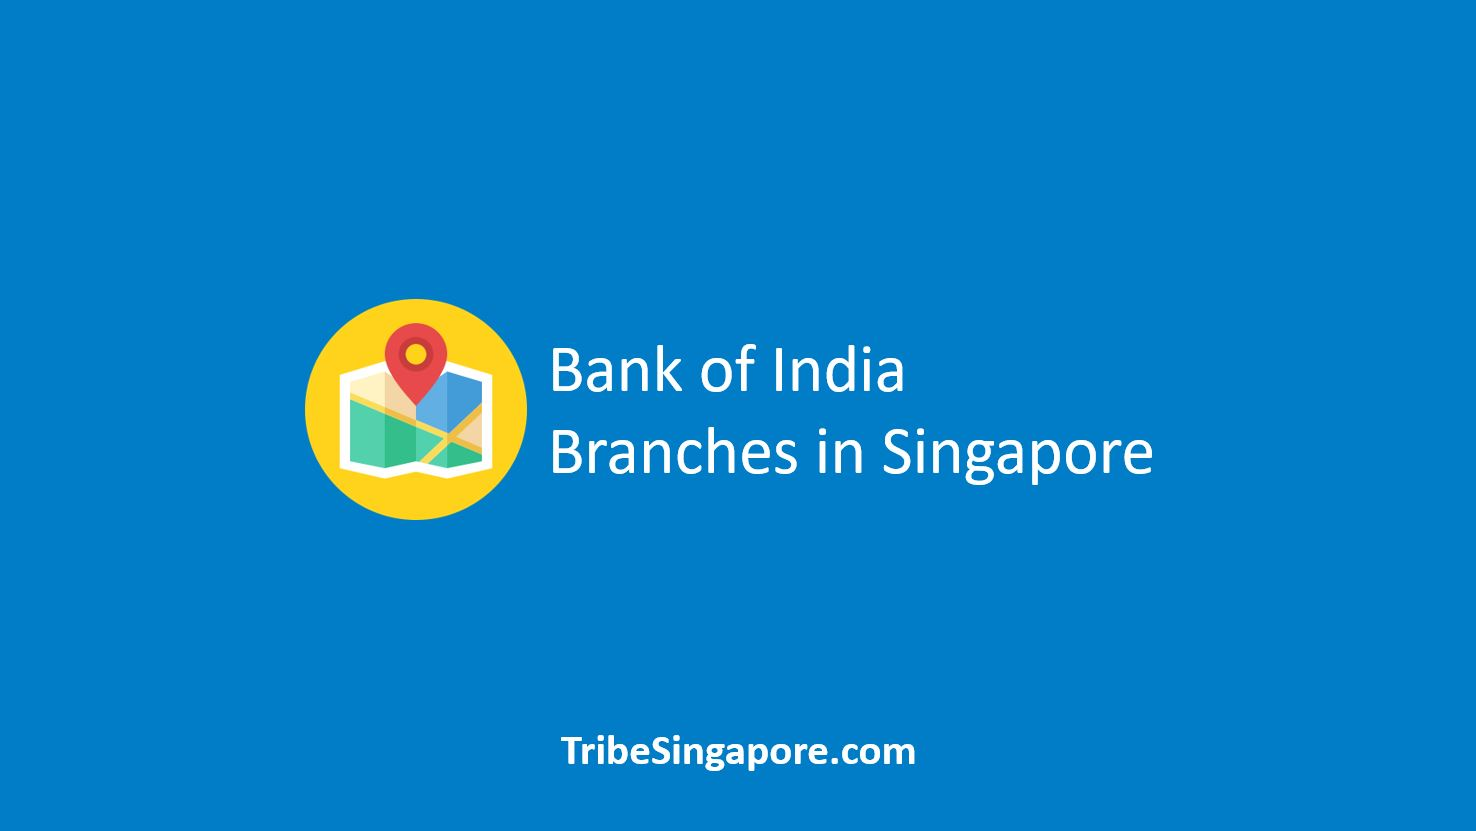 Bank of India Branches in Singapore